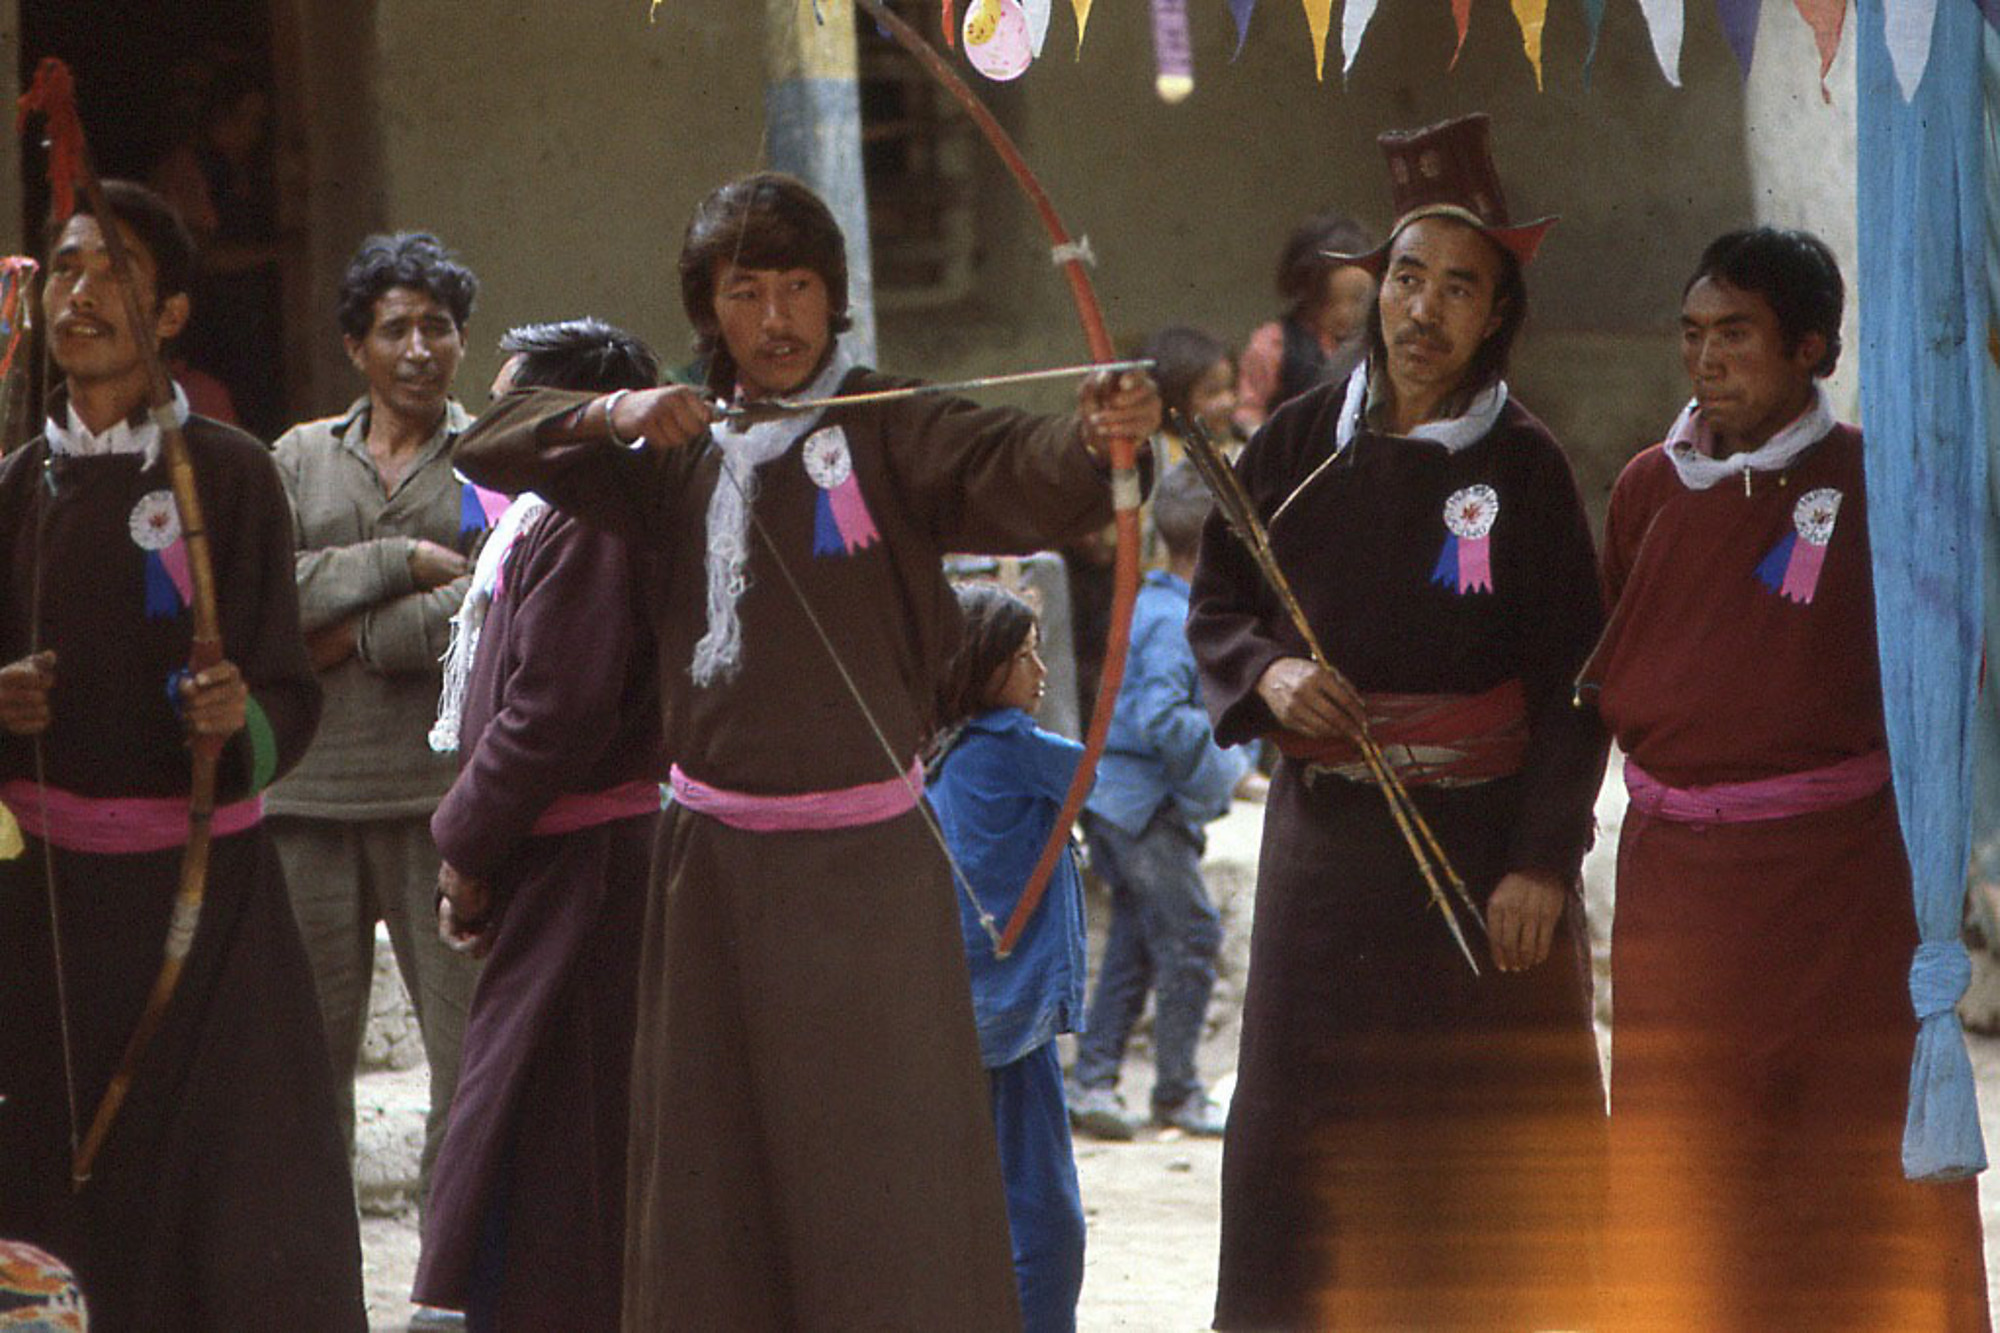 Film Studies of Traditional Tibetan Life and Culture: Ladakh, India, 1978 86.13.3-22OP 7/21/1978 (4pm)